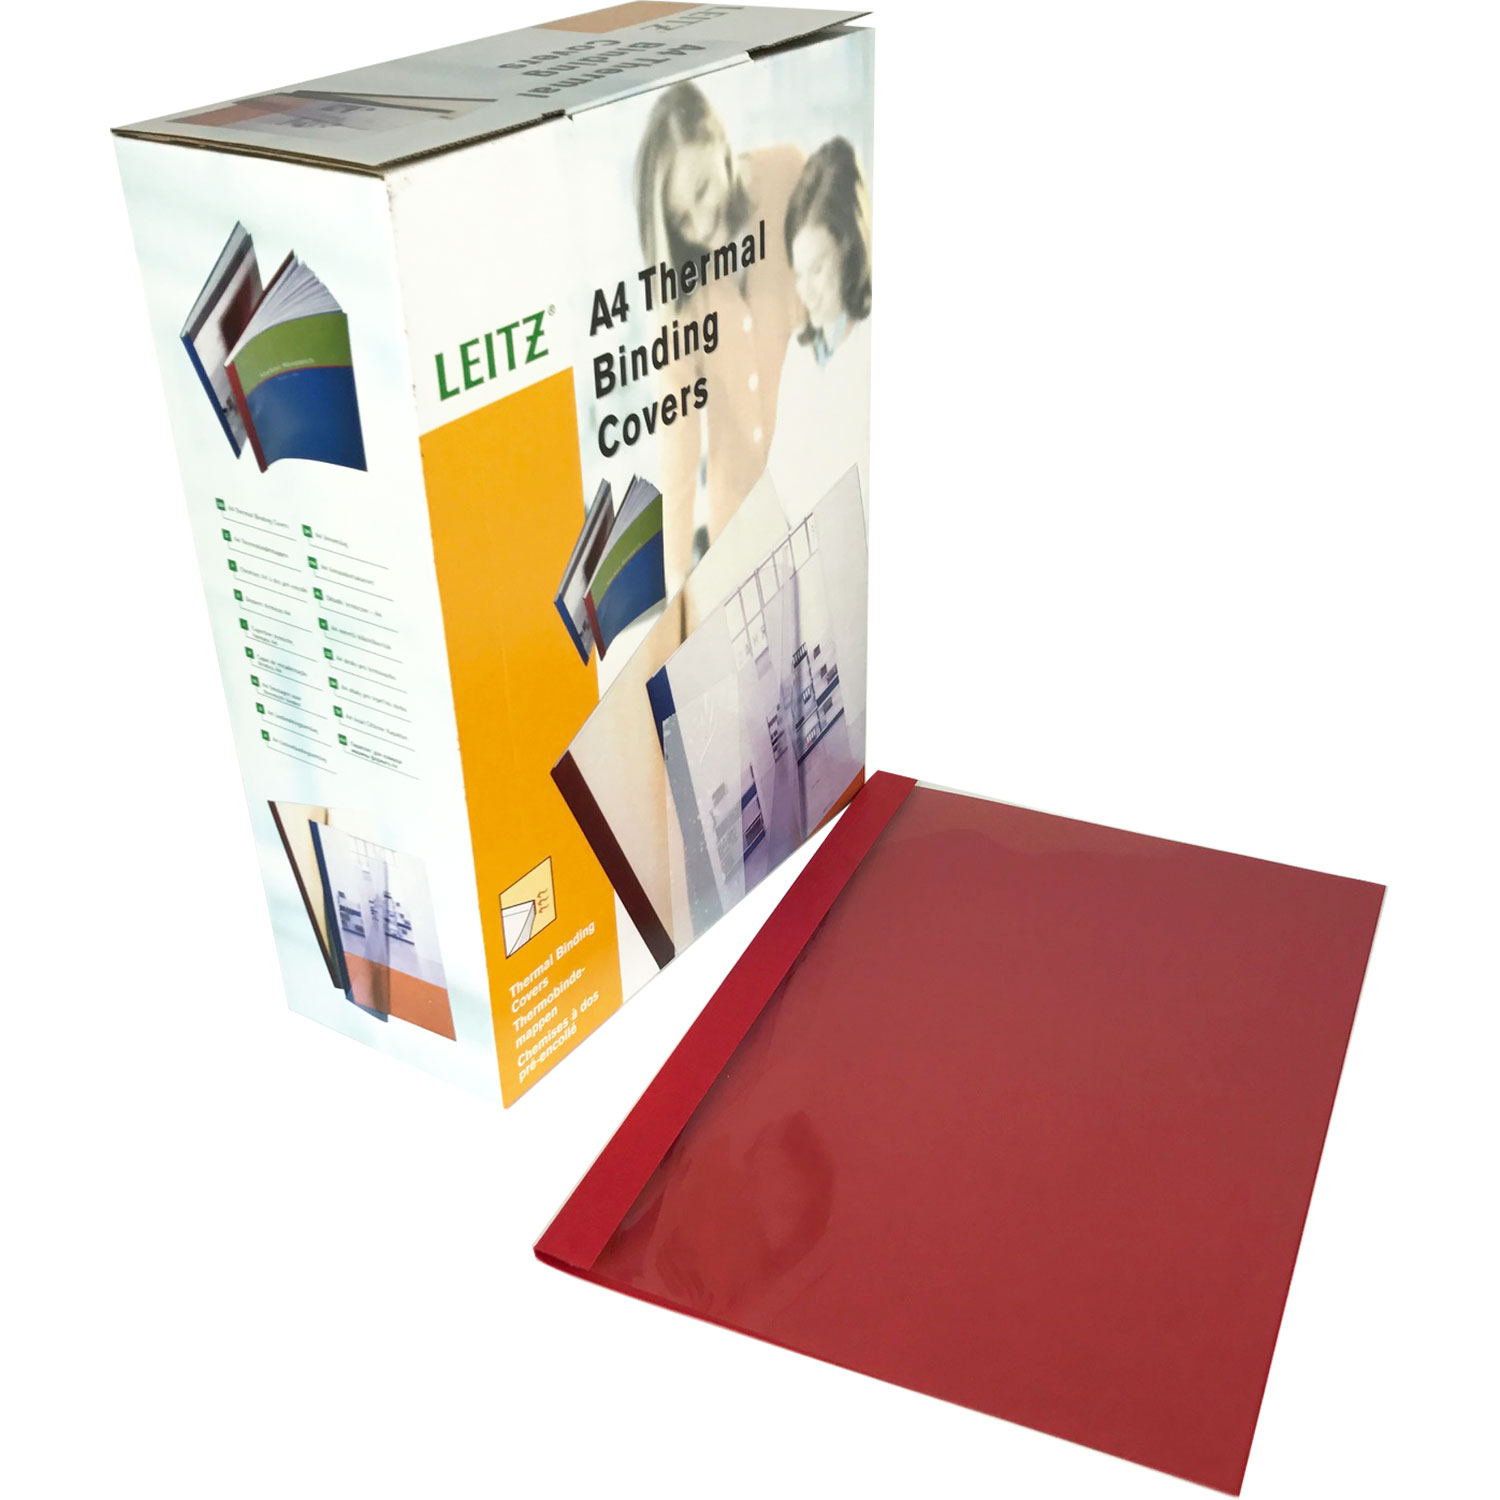 Leitz A4 Red Leathergrain Thermal Binding Covers (100)